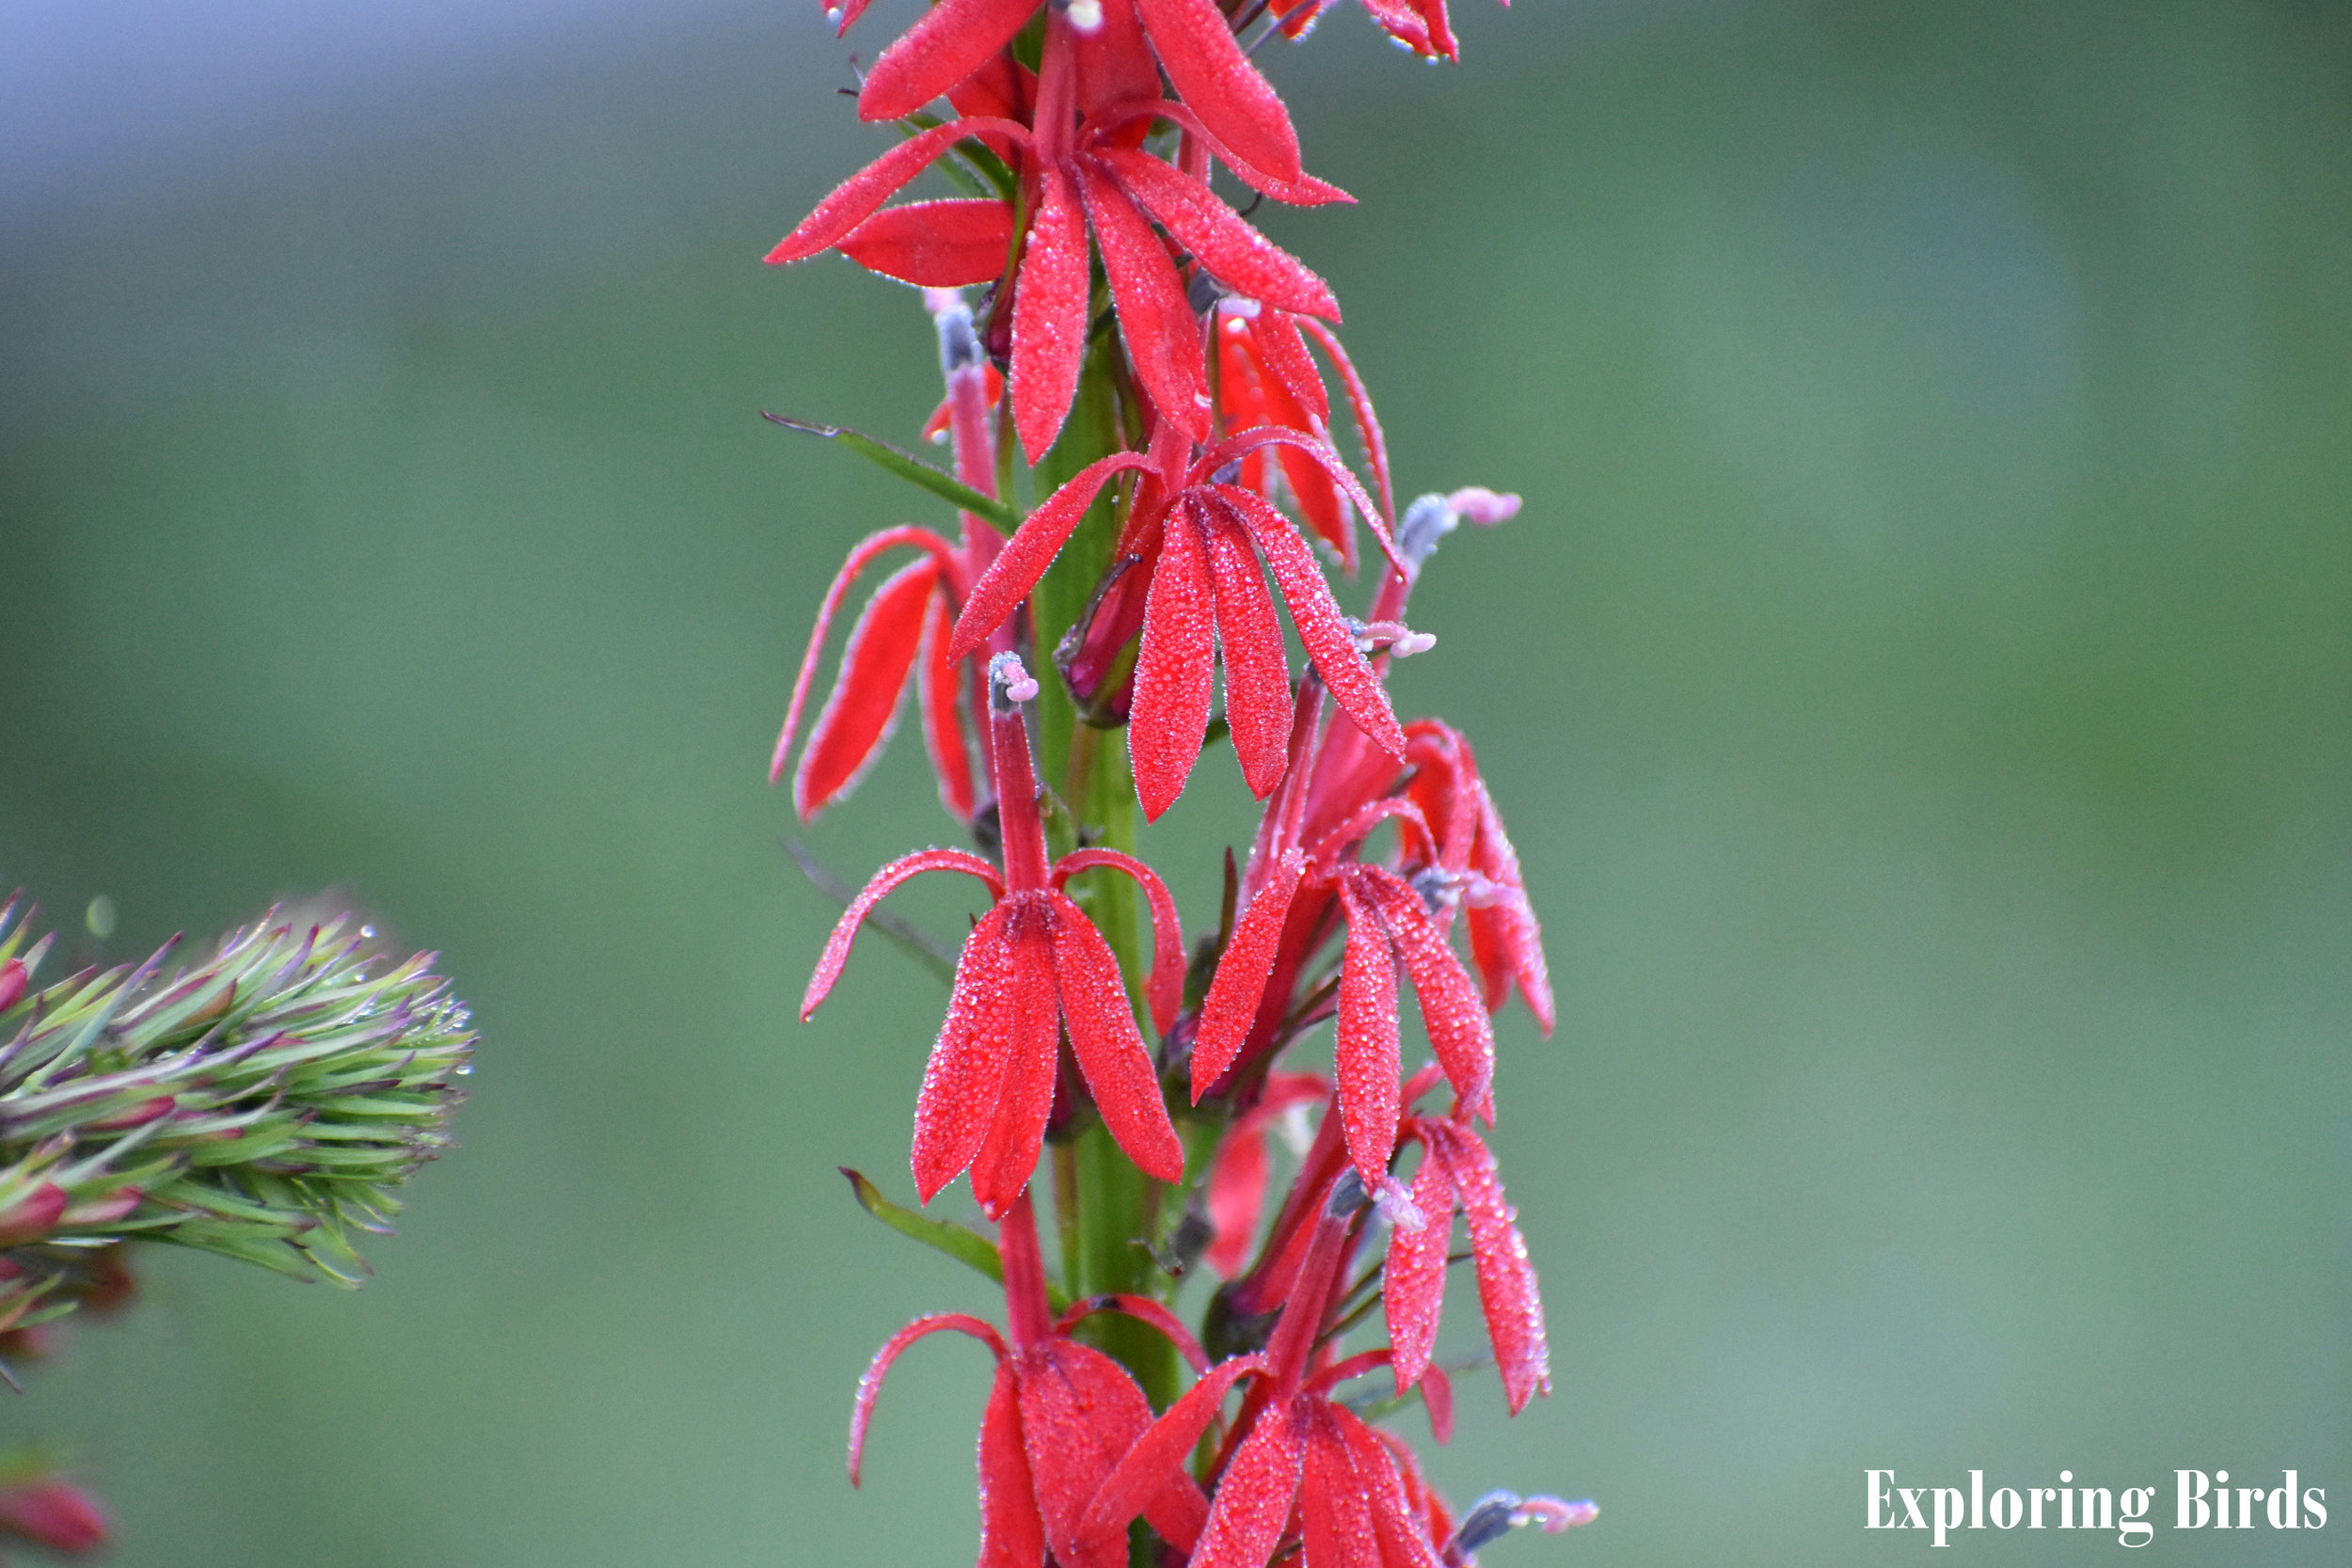 Cardinal Flower attracts hummingbirds due to is red color